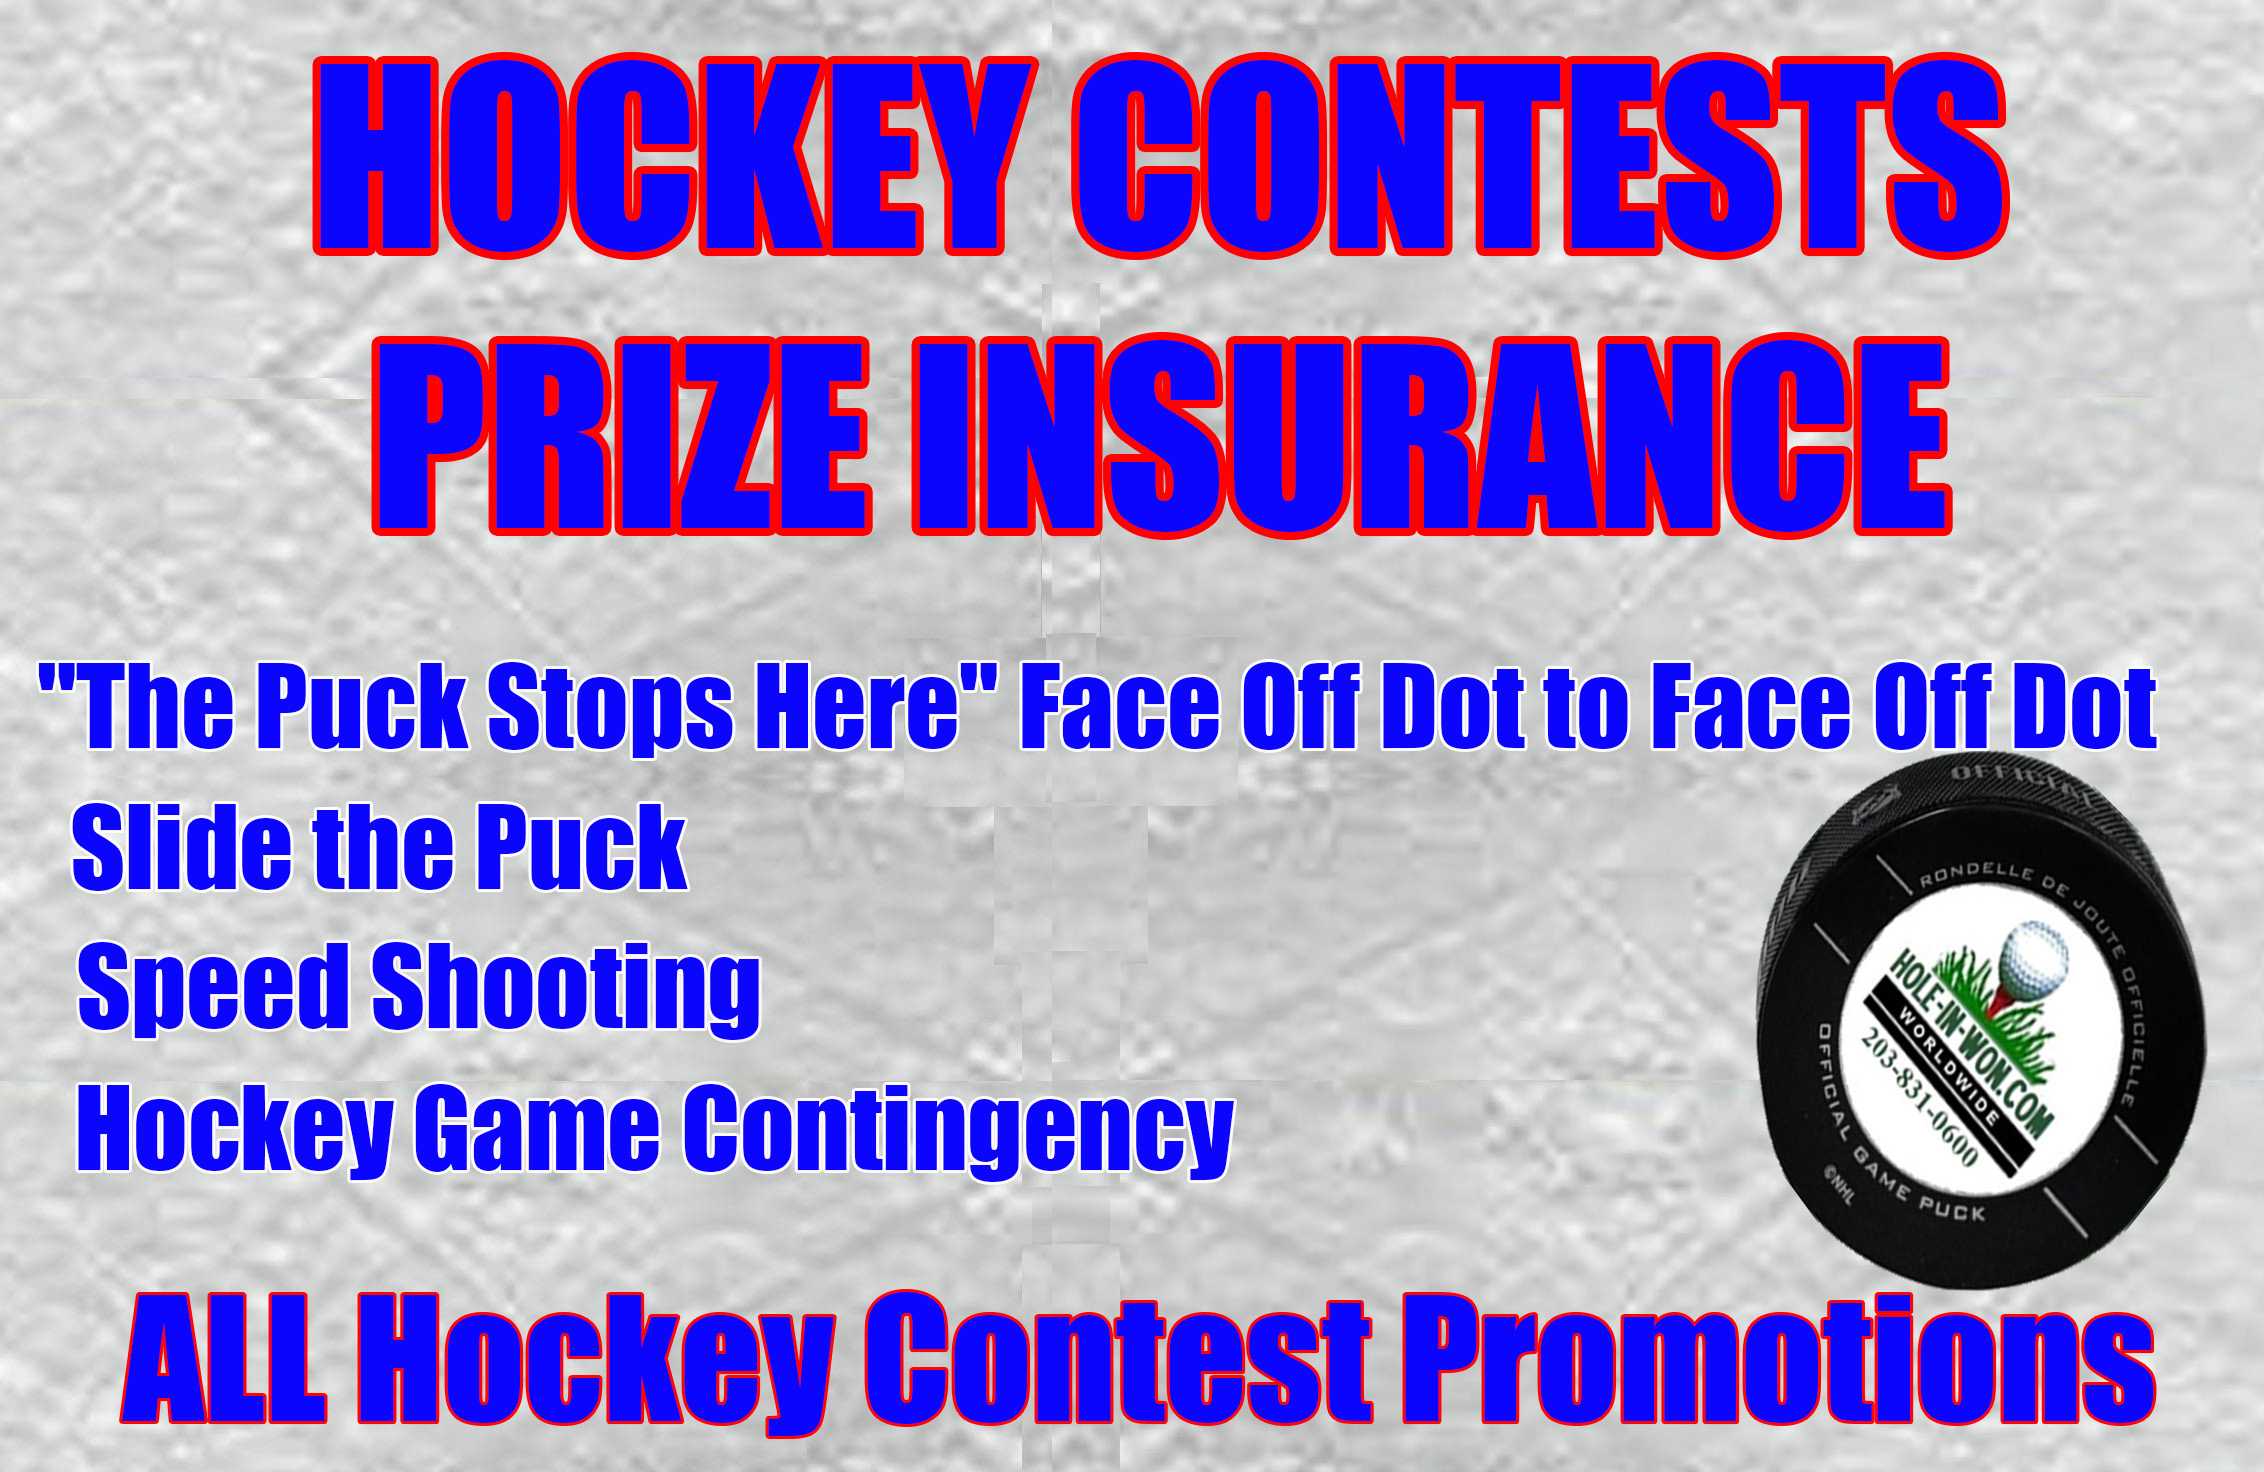 Halftime Hockey Contest